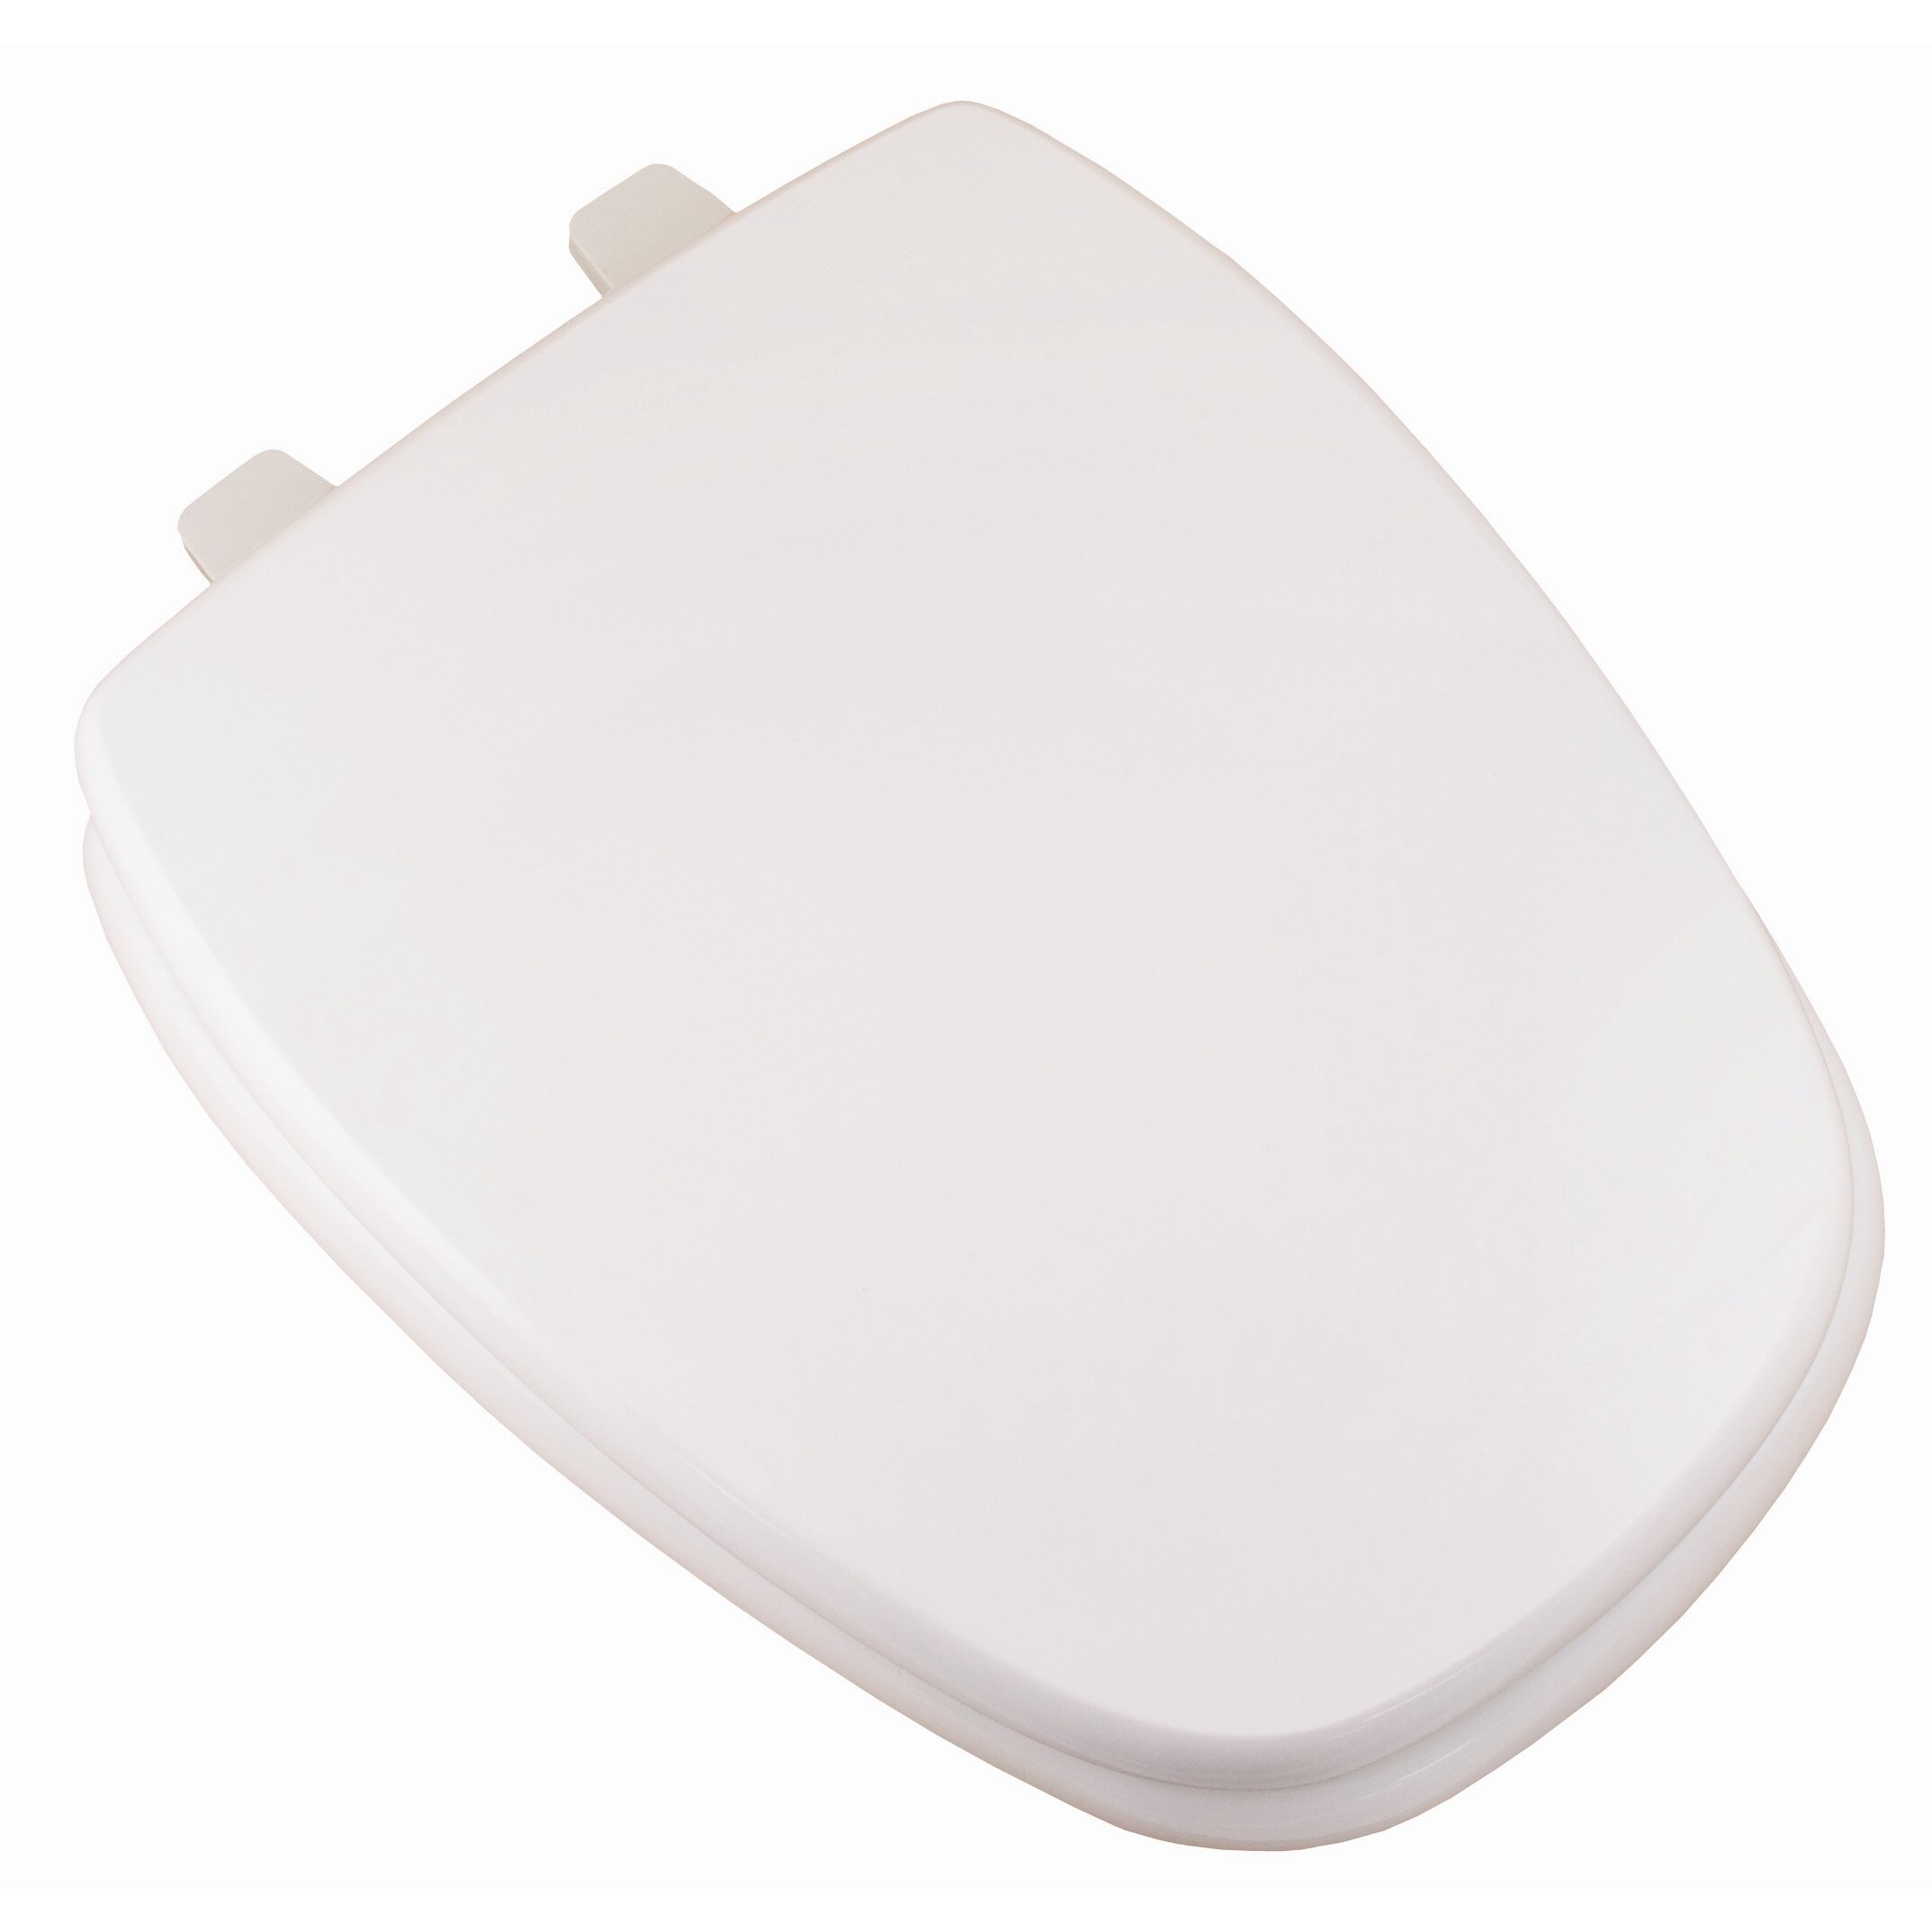 Comfort Seats Deluxe Square Front Elongated Toilet Seat Reviews Wayfa